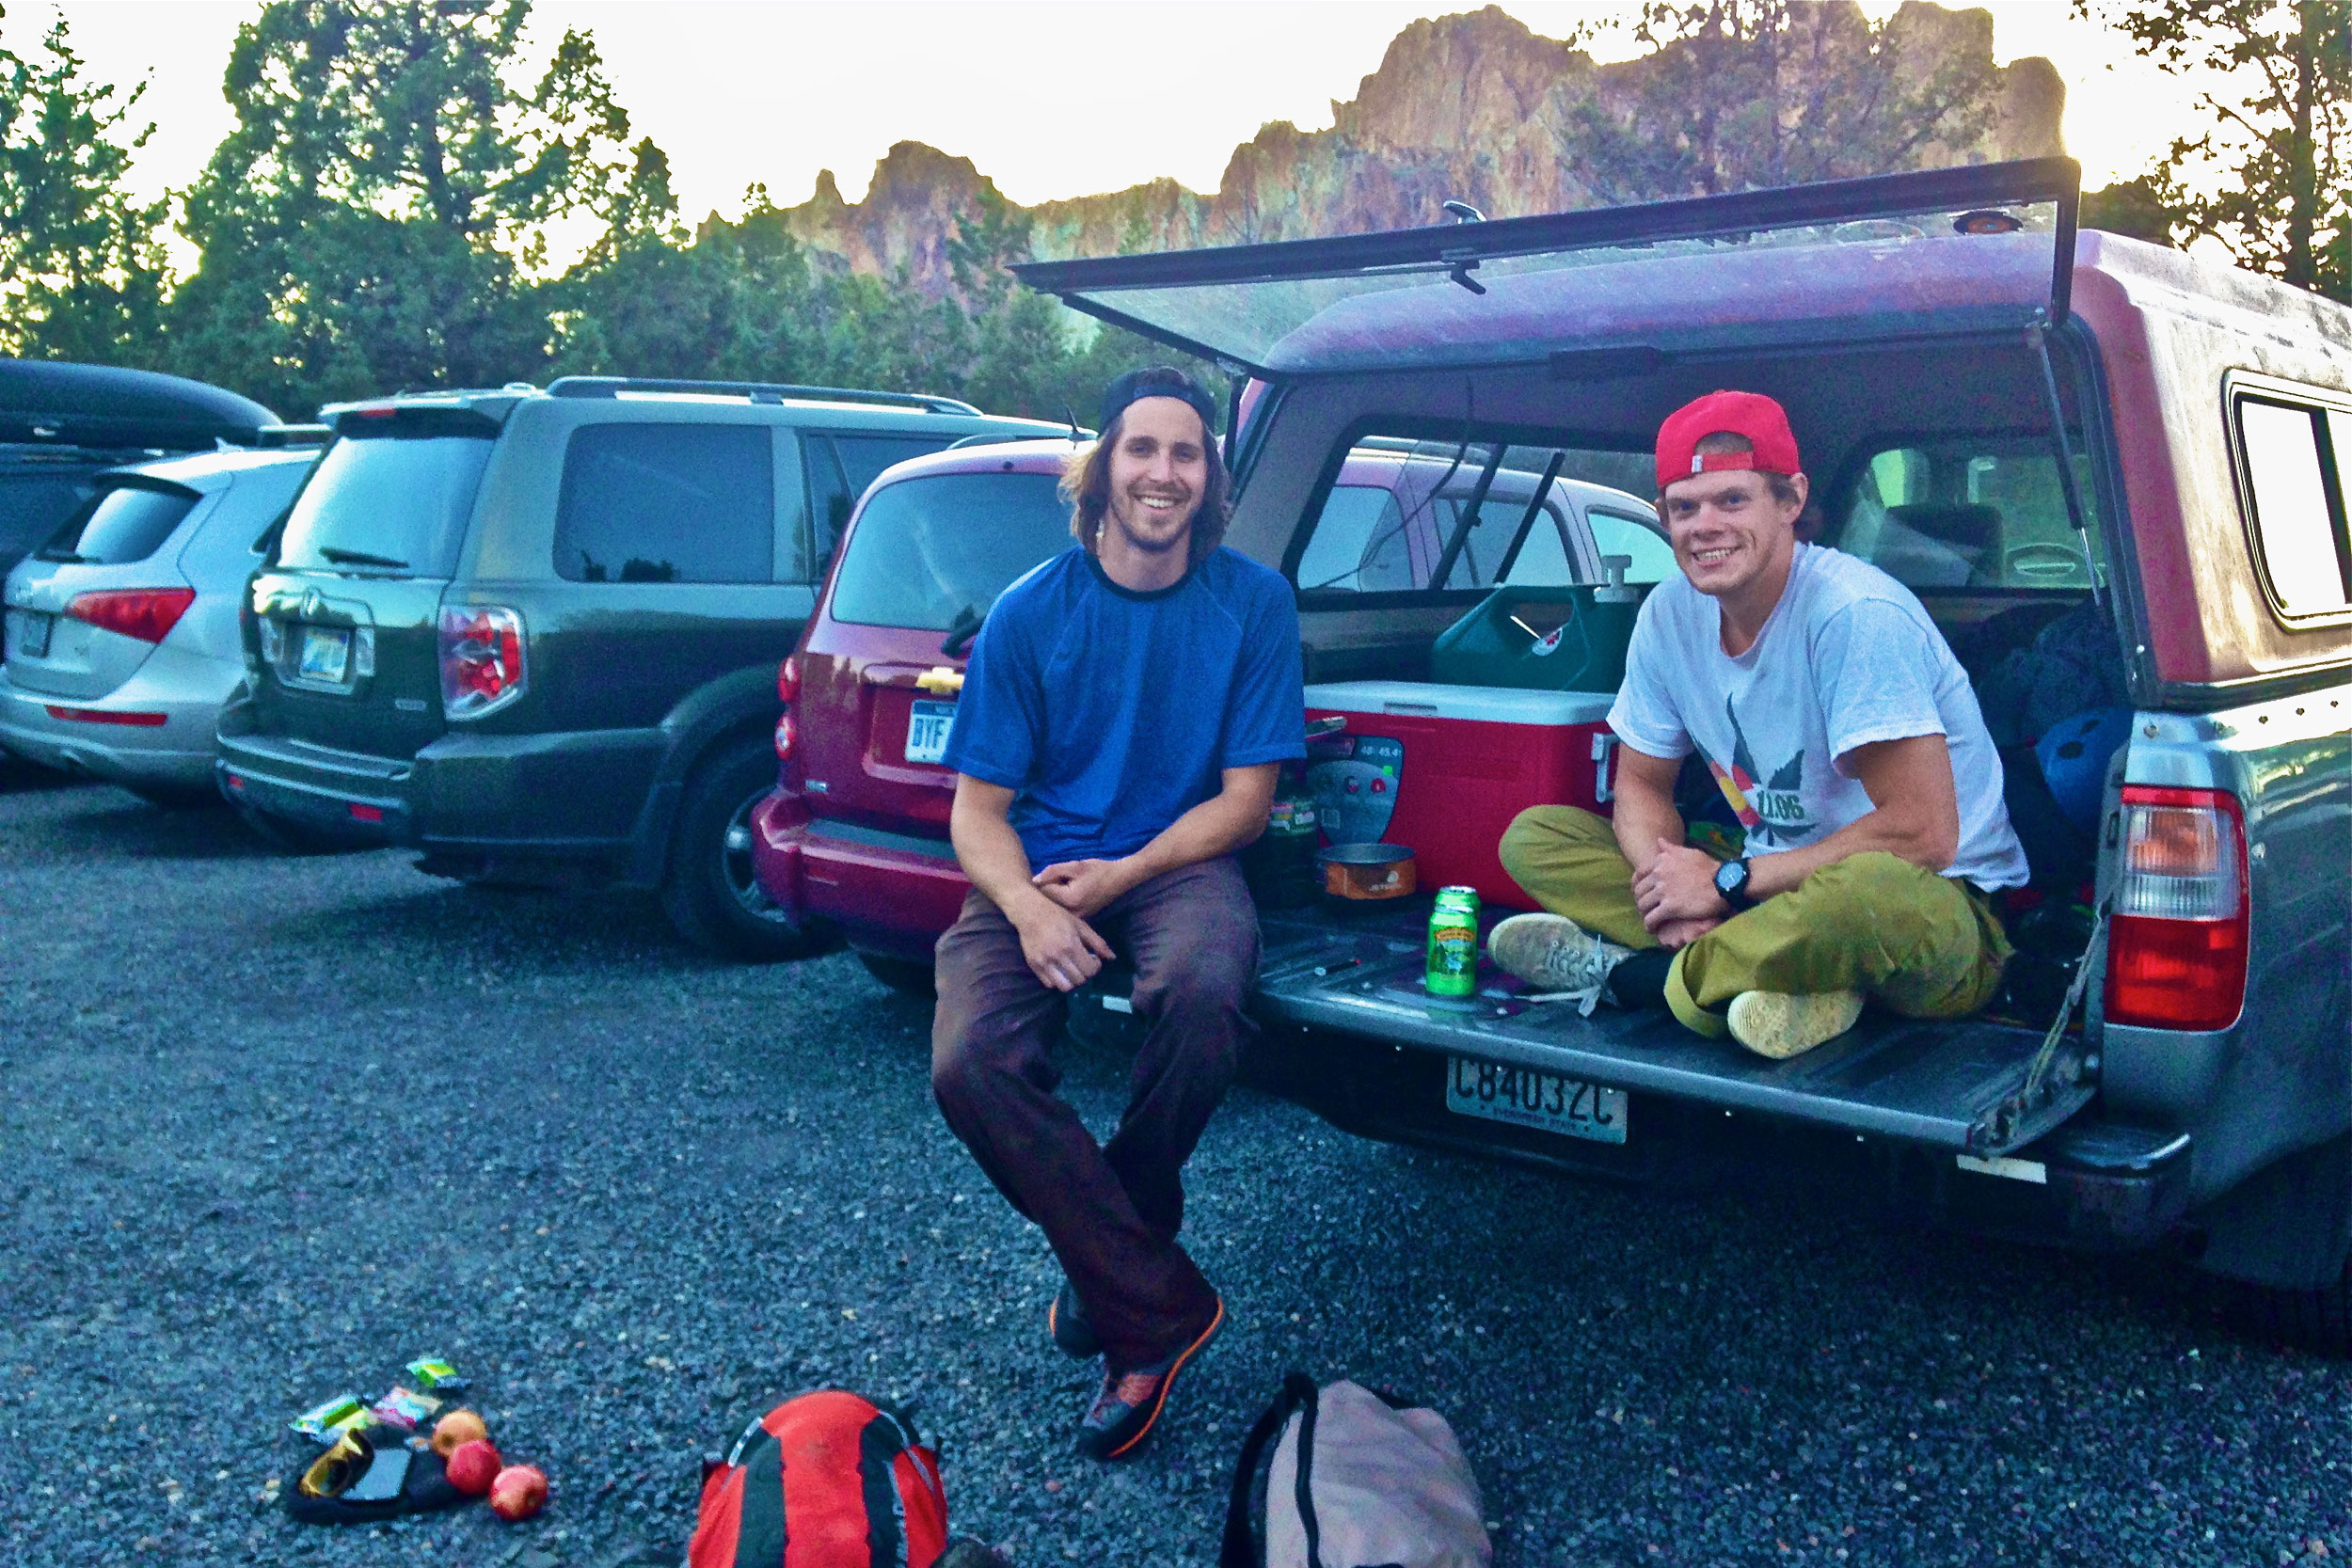 climbers hanging out in the parking area at the Bivy campground at Smith Rock State Park